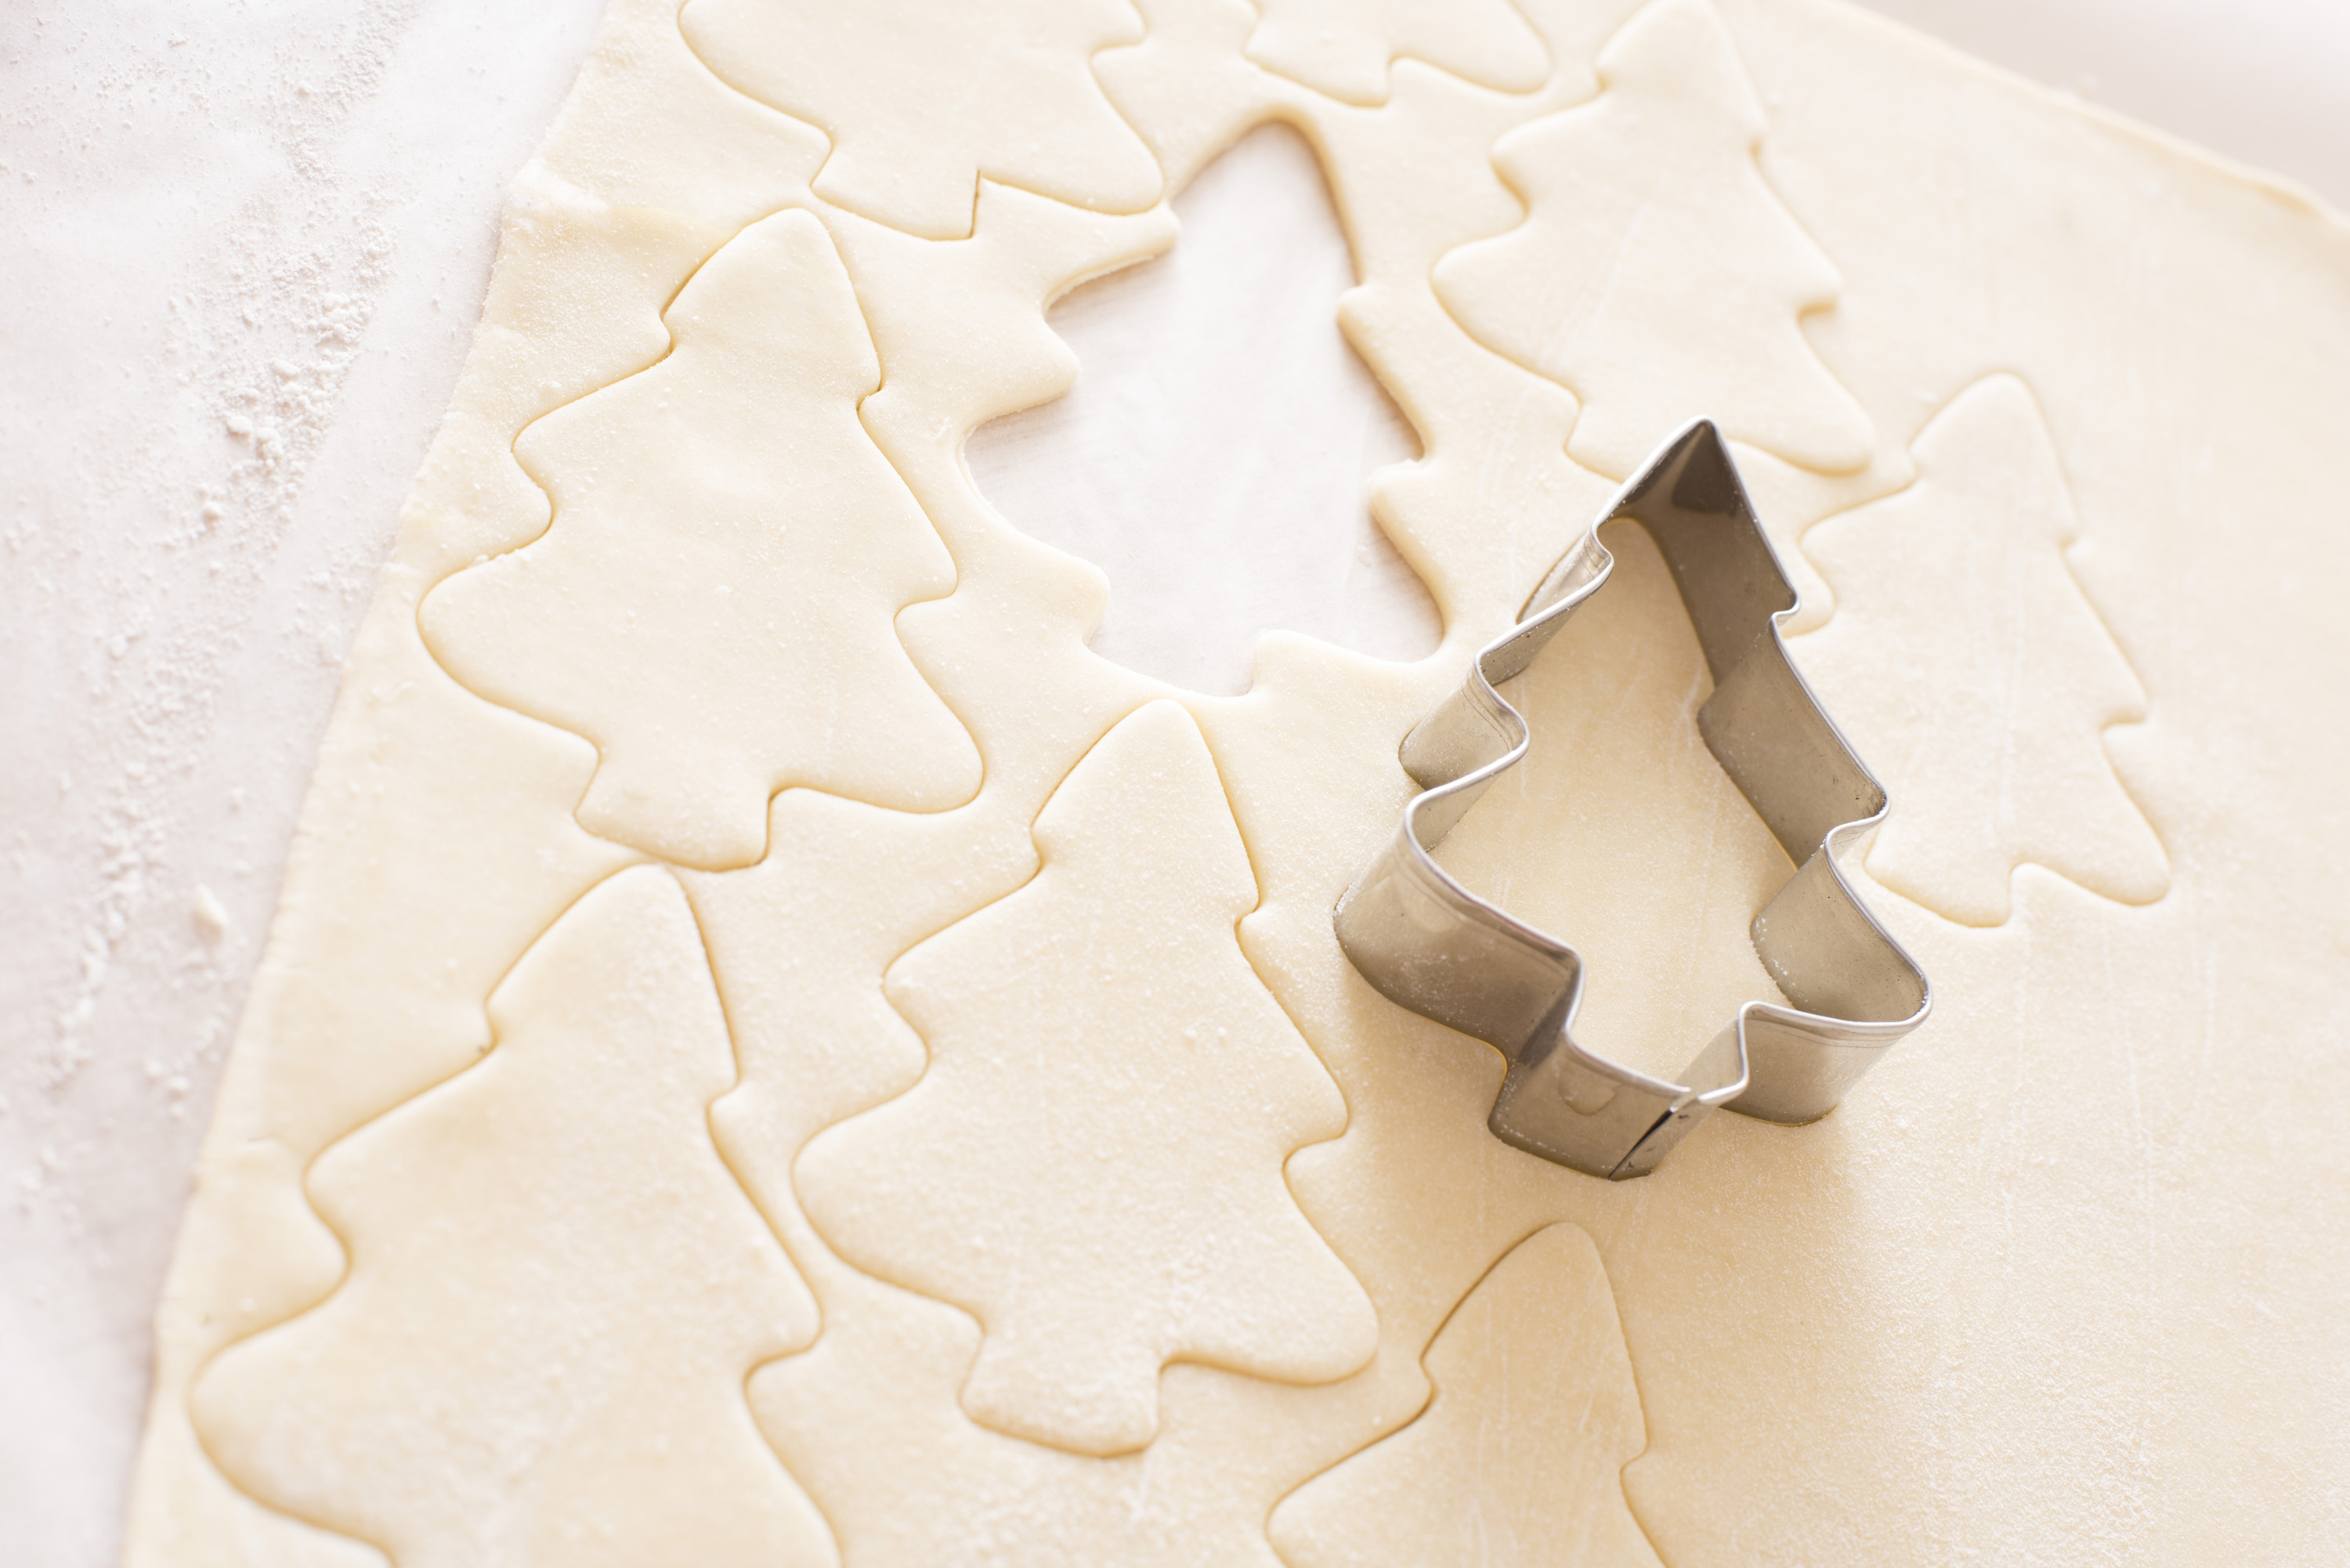 Baking traditional homemade Christmas cookies with rolled fresh dough and a tree shaped cookie cutter in a close up view